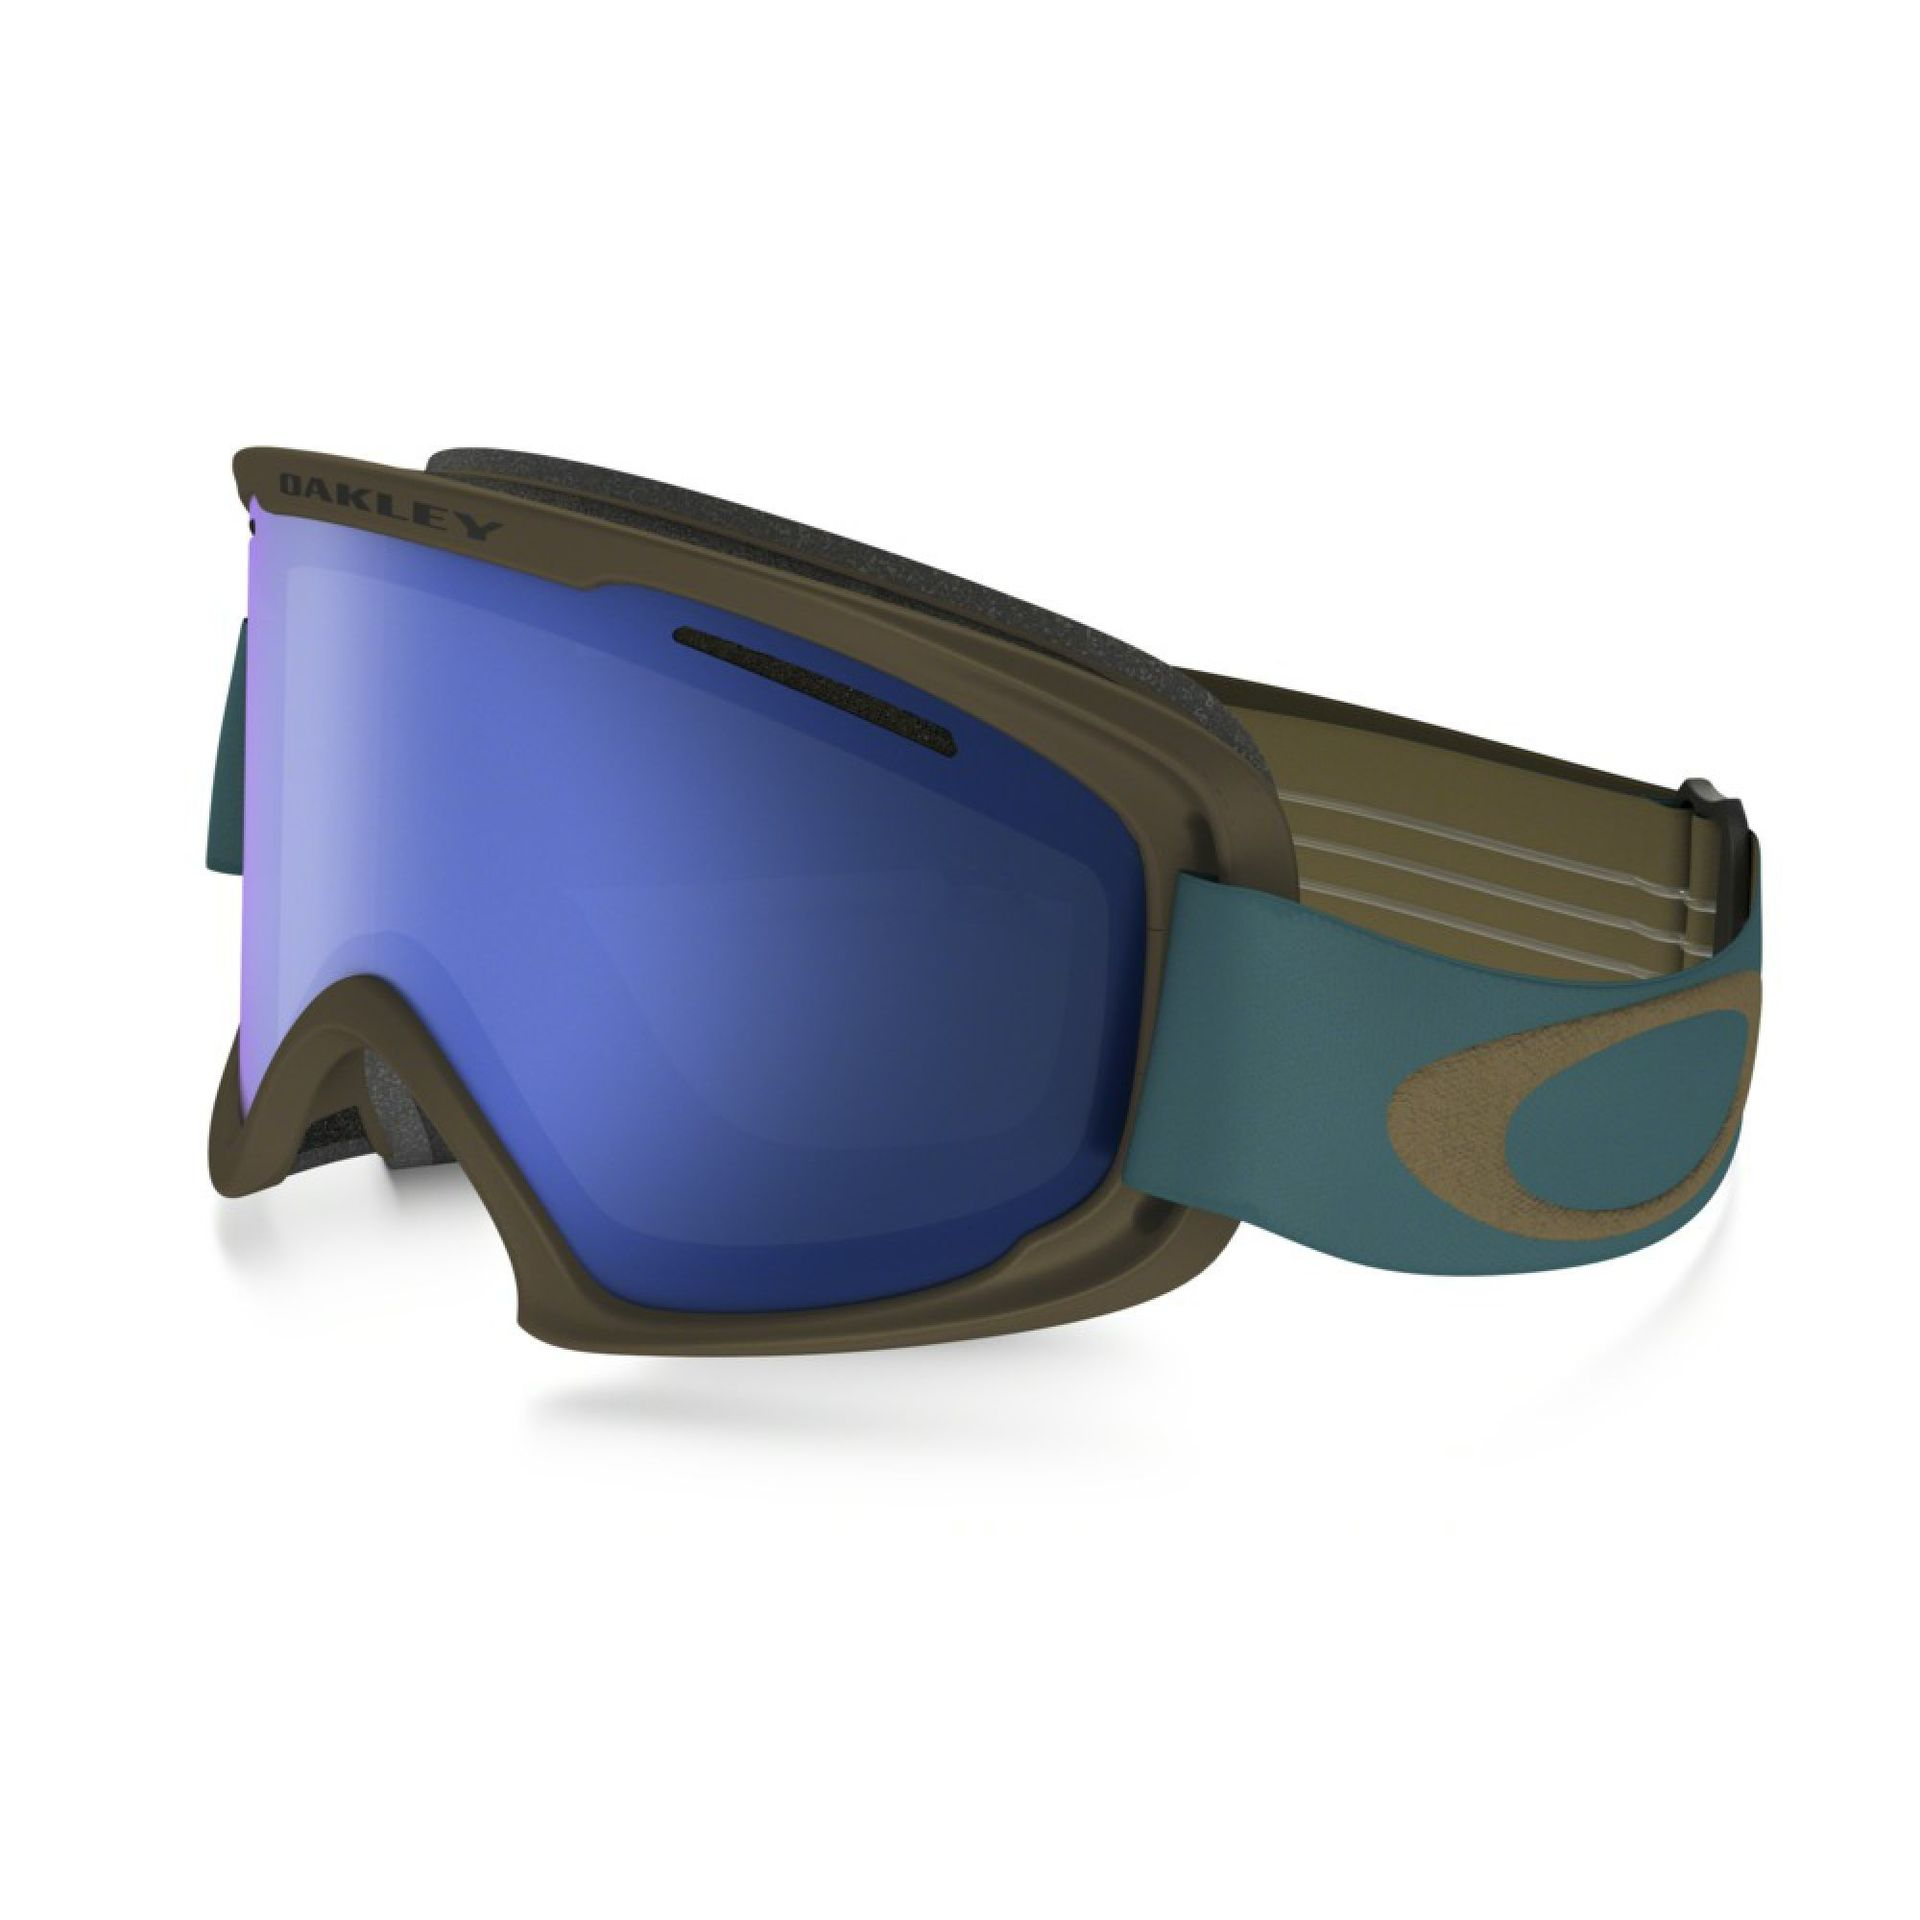 GOGLE OAKLEY FLIGHT DECK XM  COPPER AURORA BLUE BLACK ICE IRIDIUM